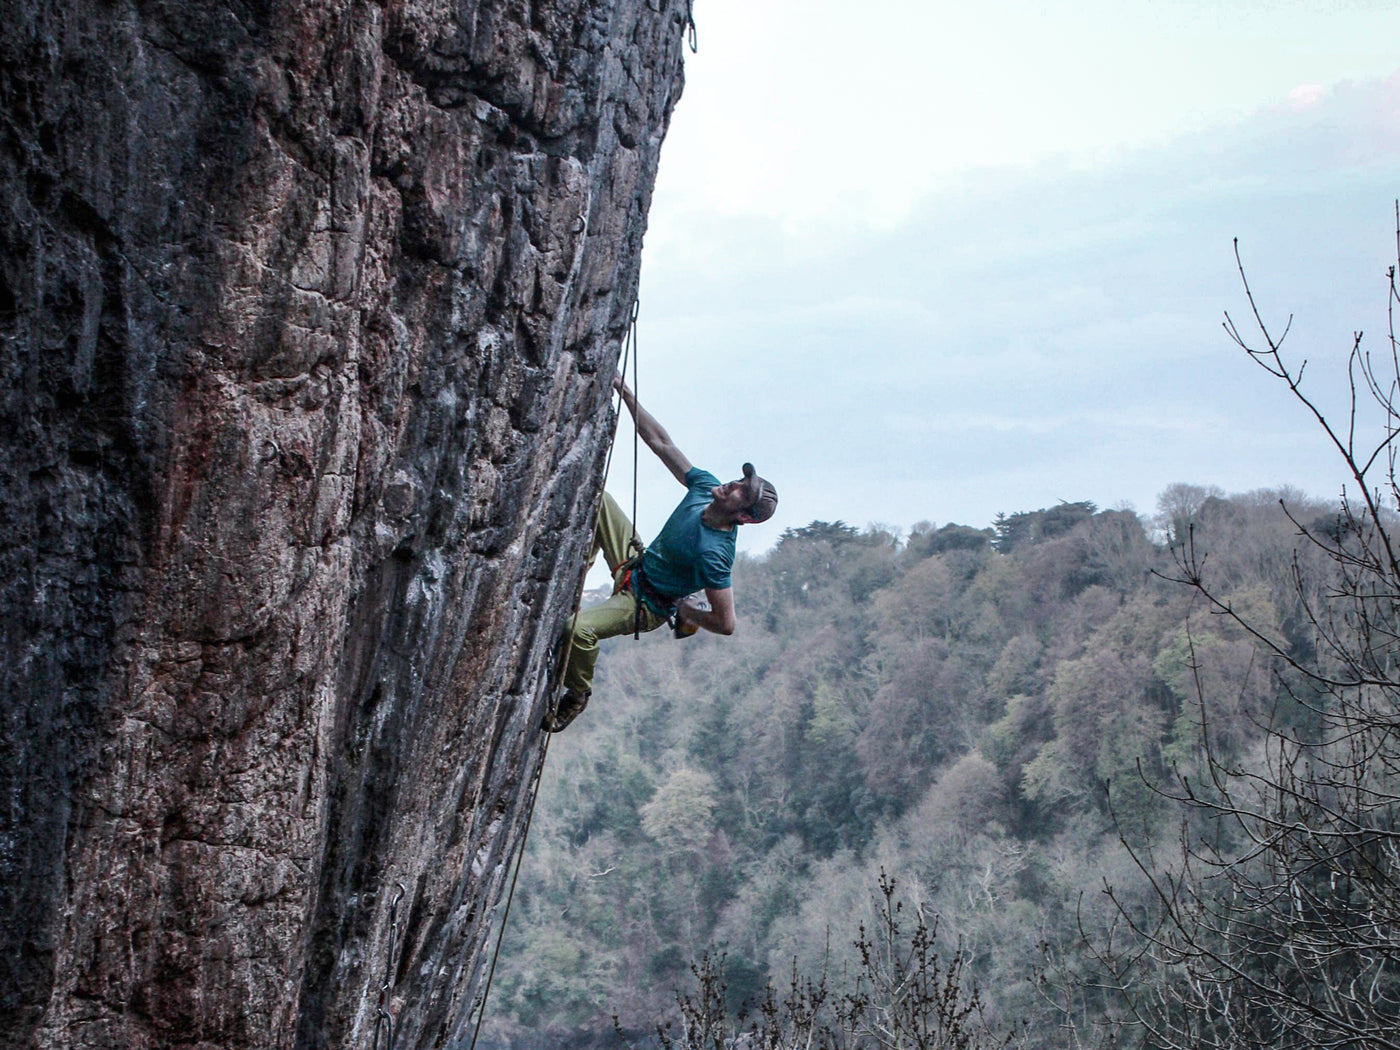 What's holding you back from climbing 8a?